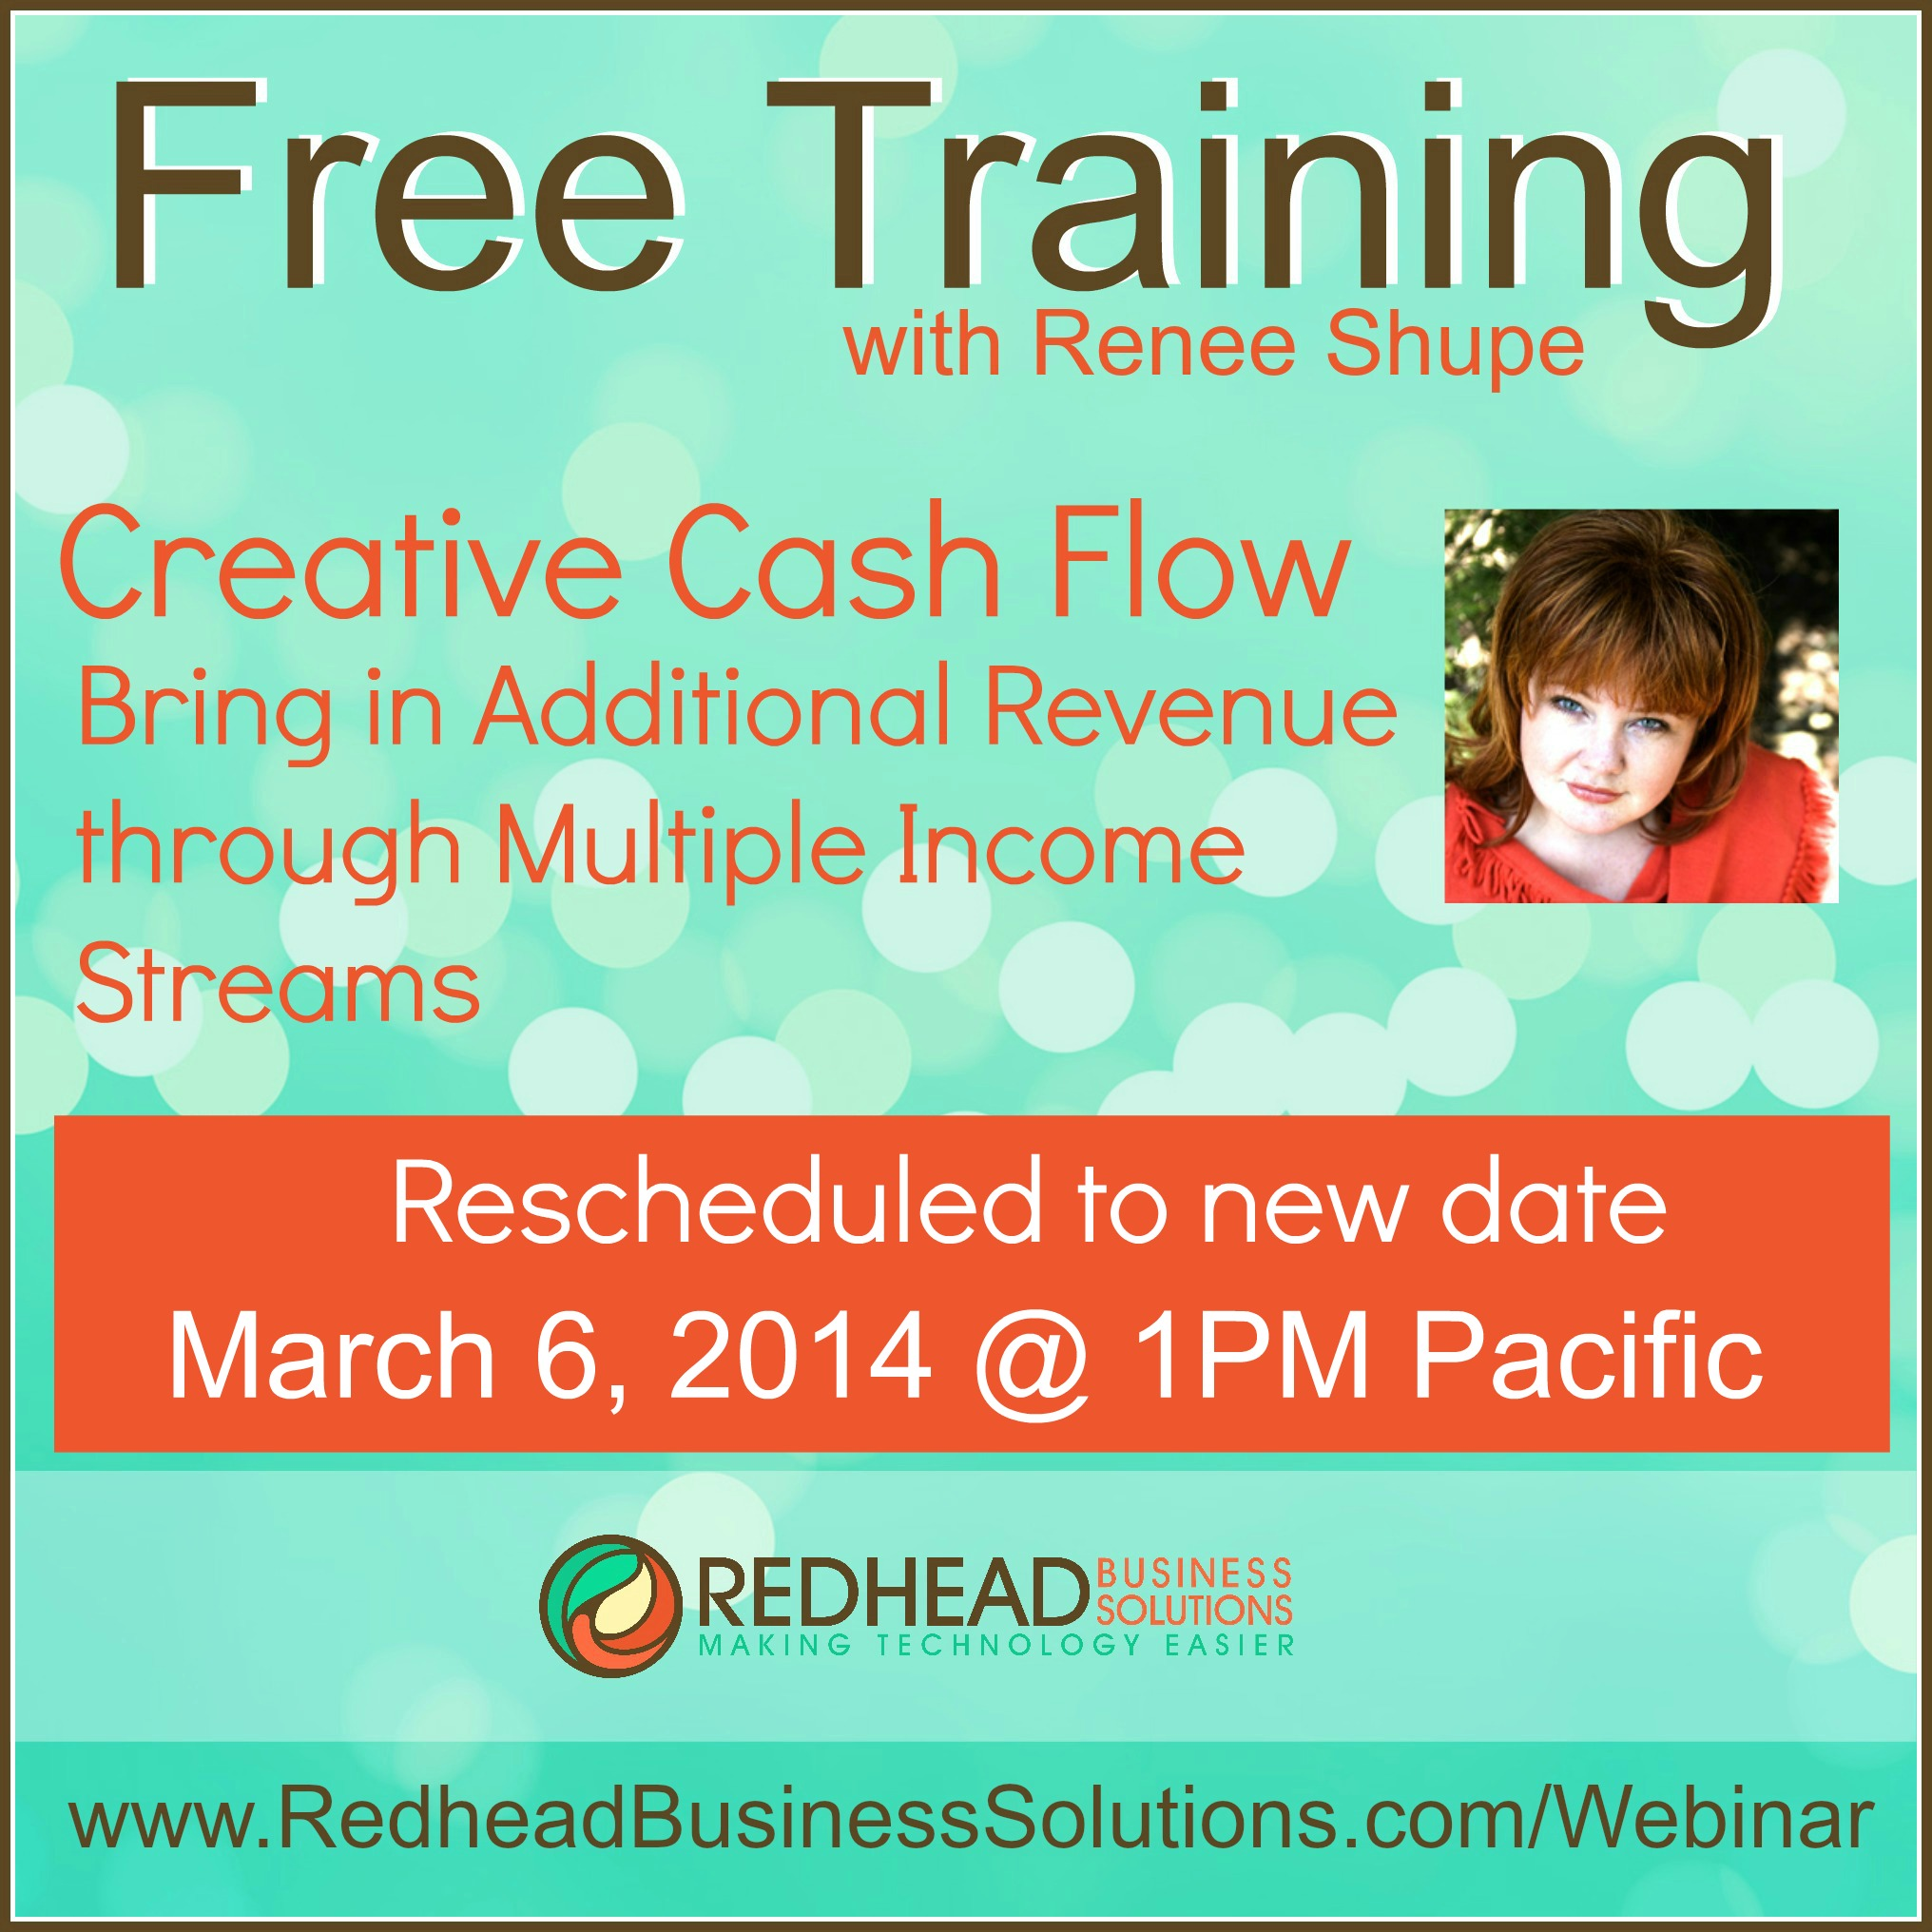 Creative Cashflow: Bring in Additional Revenue through Multiple Income Streams